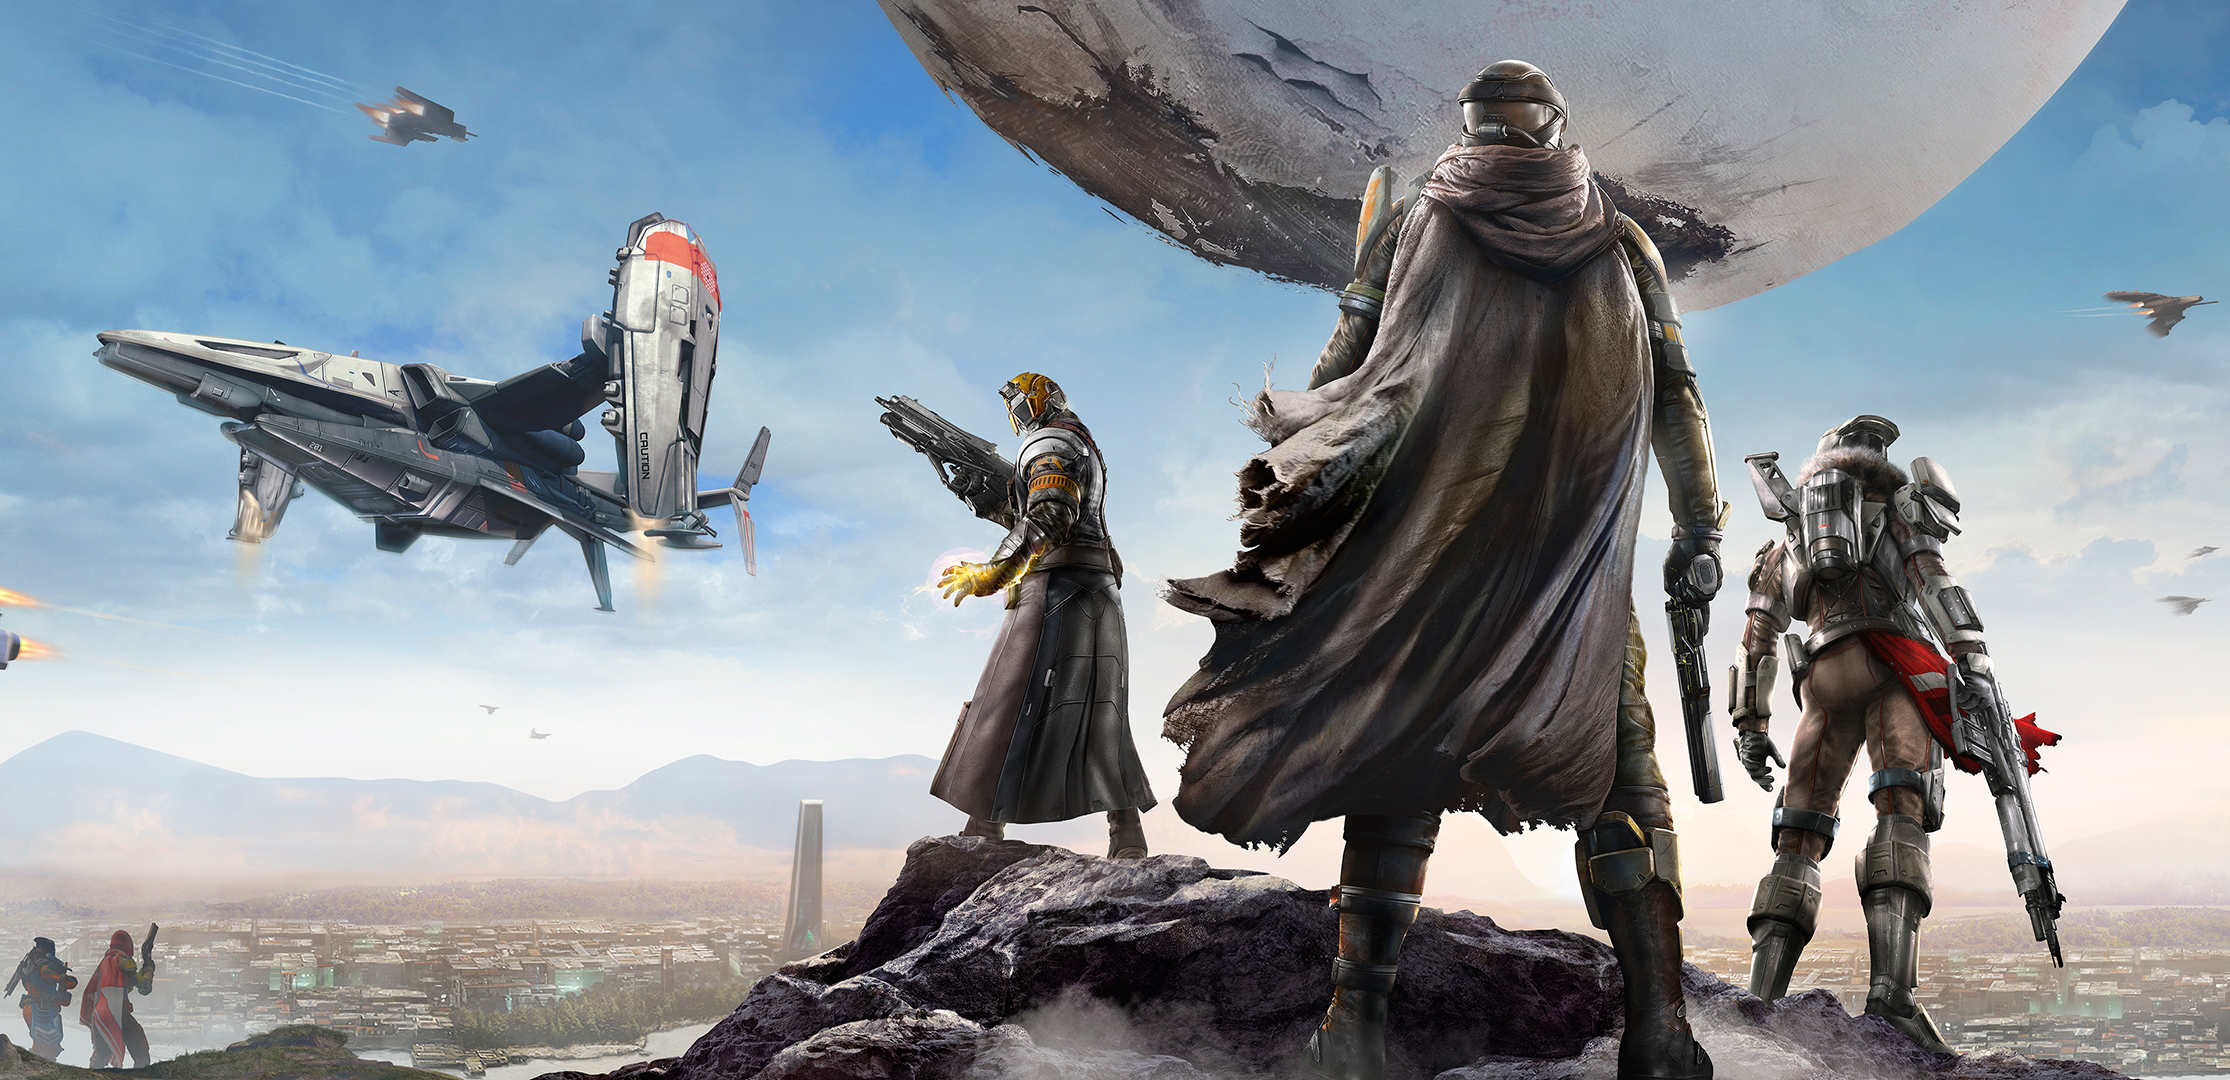 30 Destiny Wallpapers For Desktop In Hd Free Download